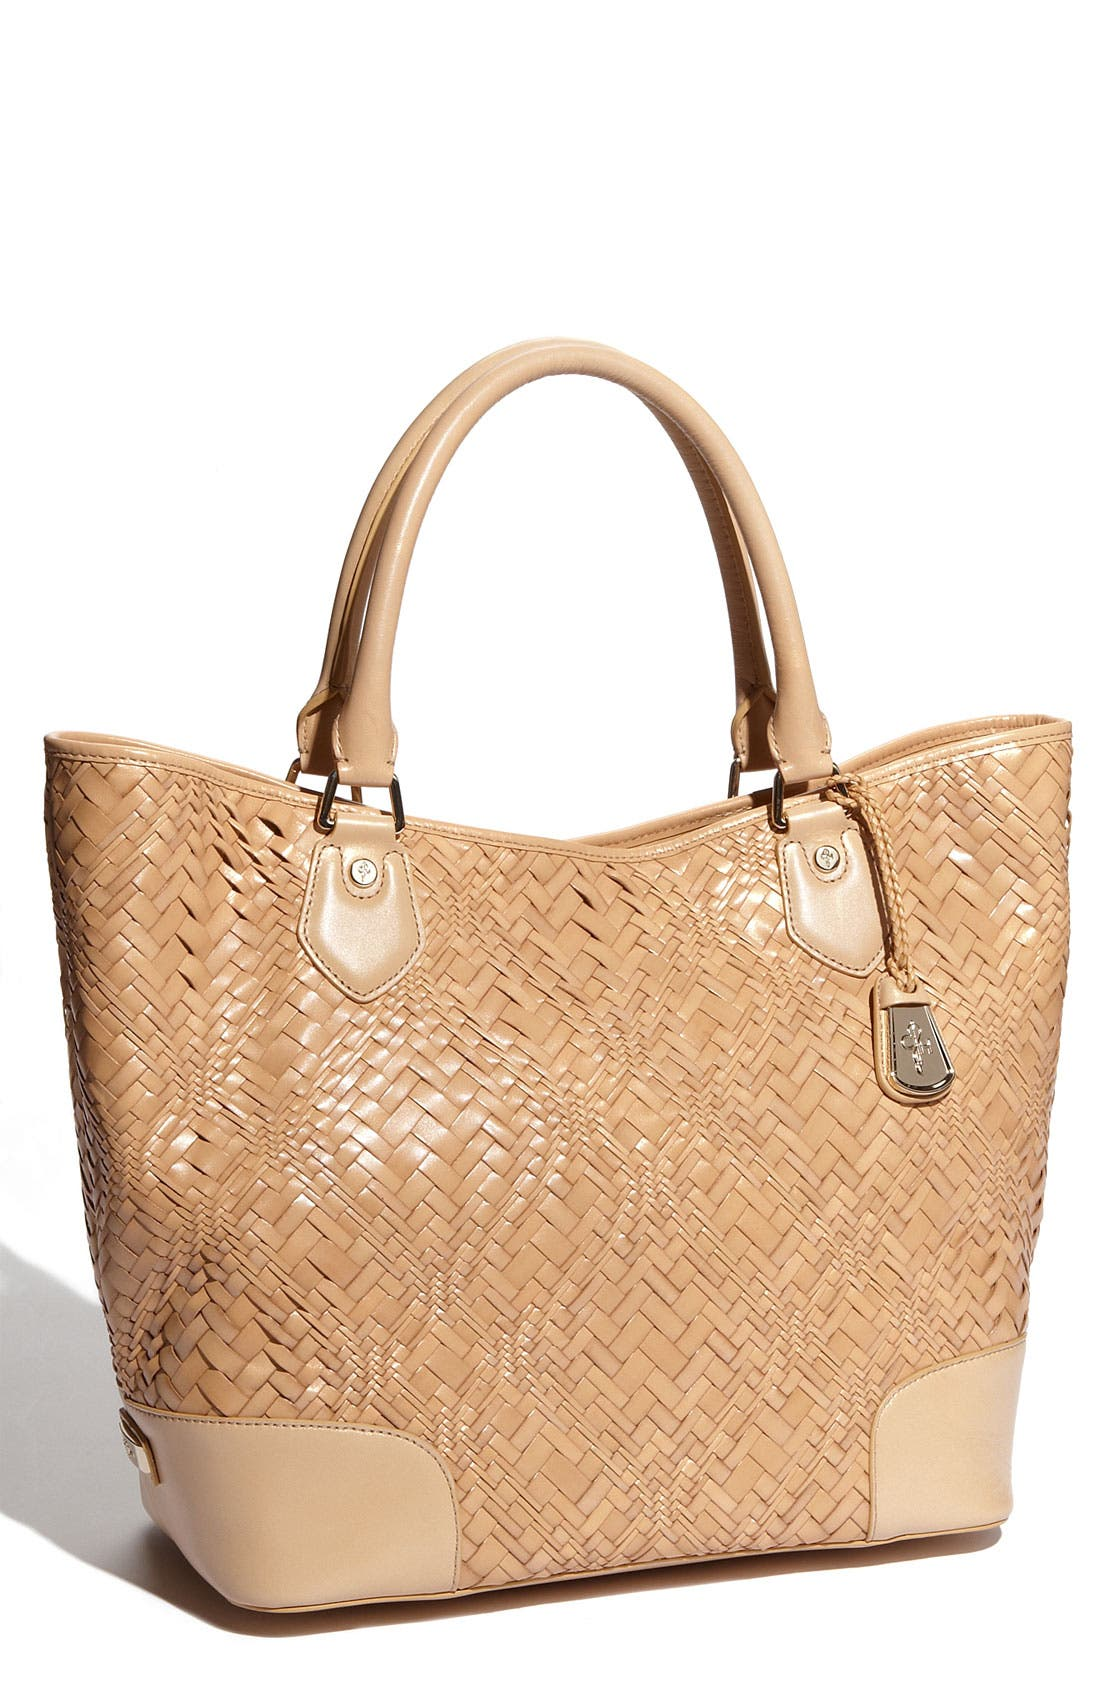 Main Image - Cole Haan 'Optical Weave' Triangle Tote